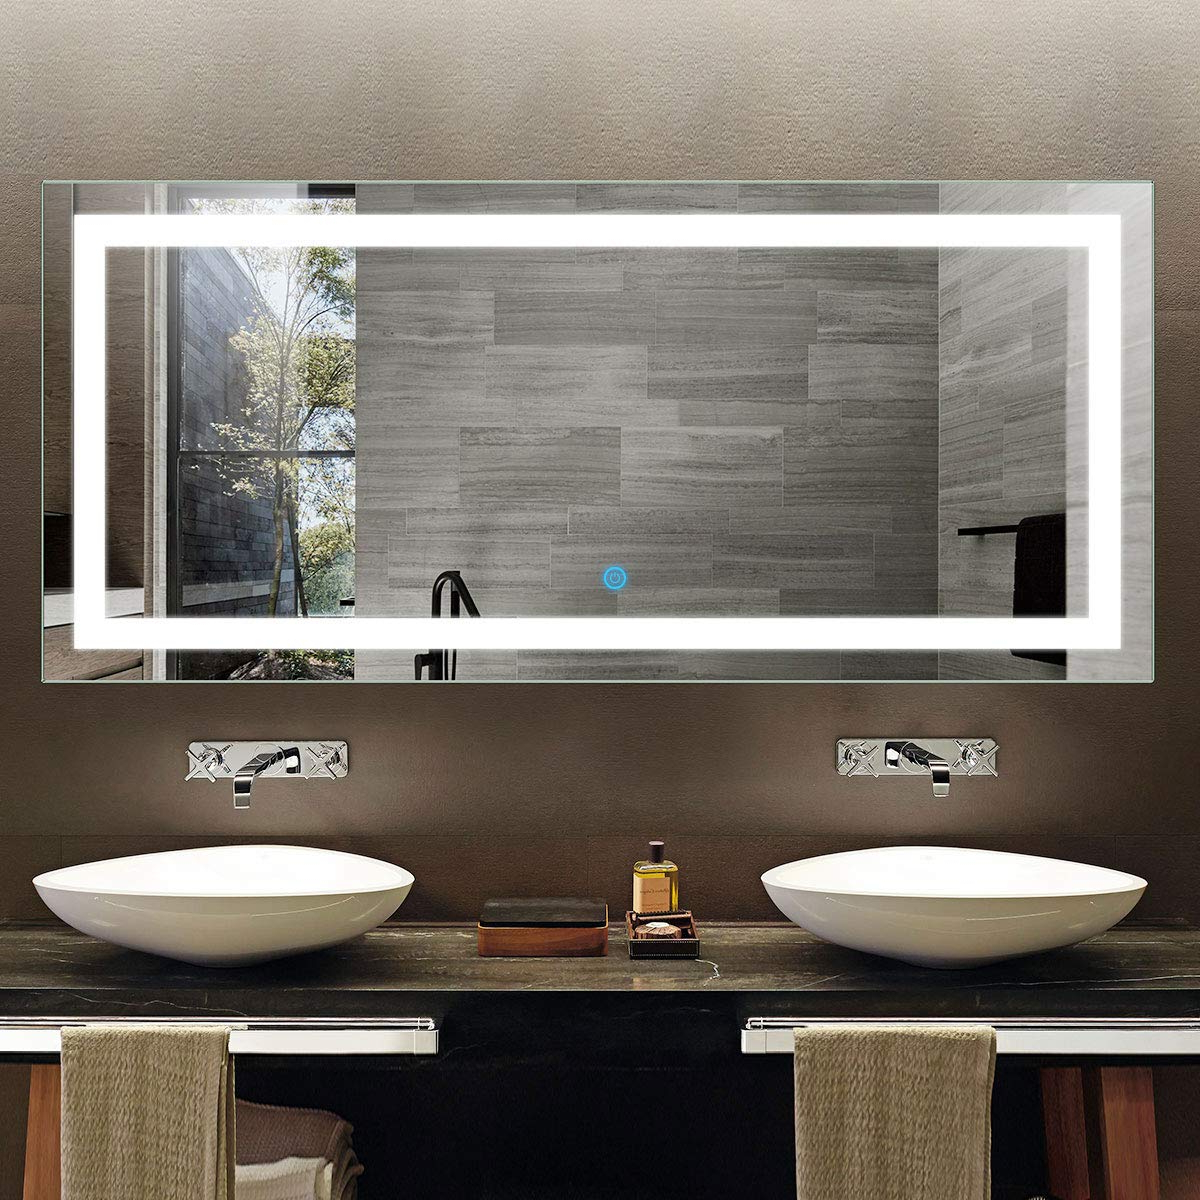 Large Modern Lighted Wall Mounted Bathroom Vanity Mirror, Led Frameless  Backlit Illuminated Wall Mirror, Rectangle Horizontally White Mirrors For Inside 2019 Large Lighted Bathroom Wall Mirrors (Gallery 2 of 20)